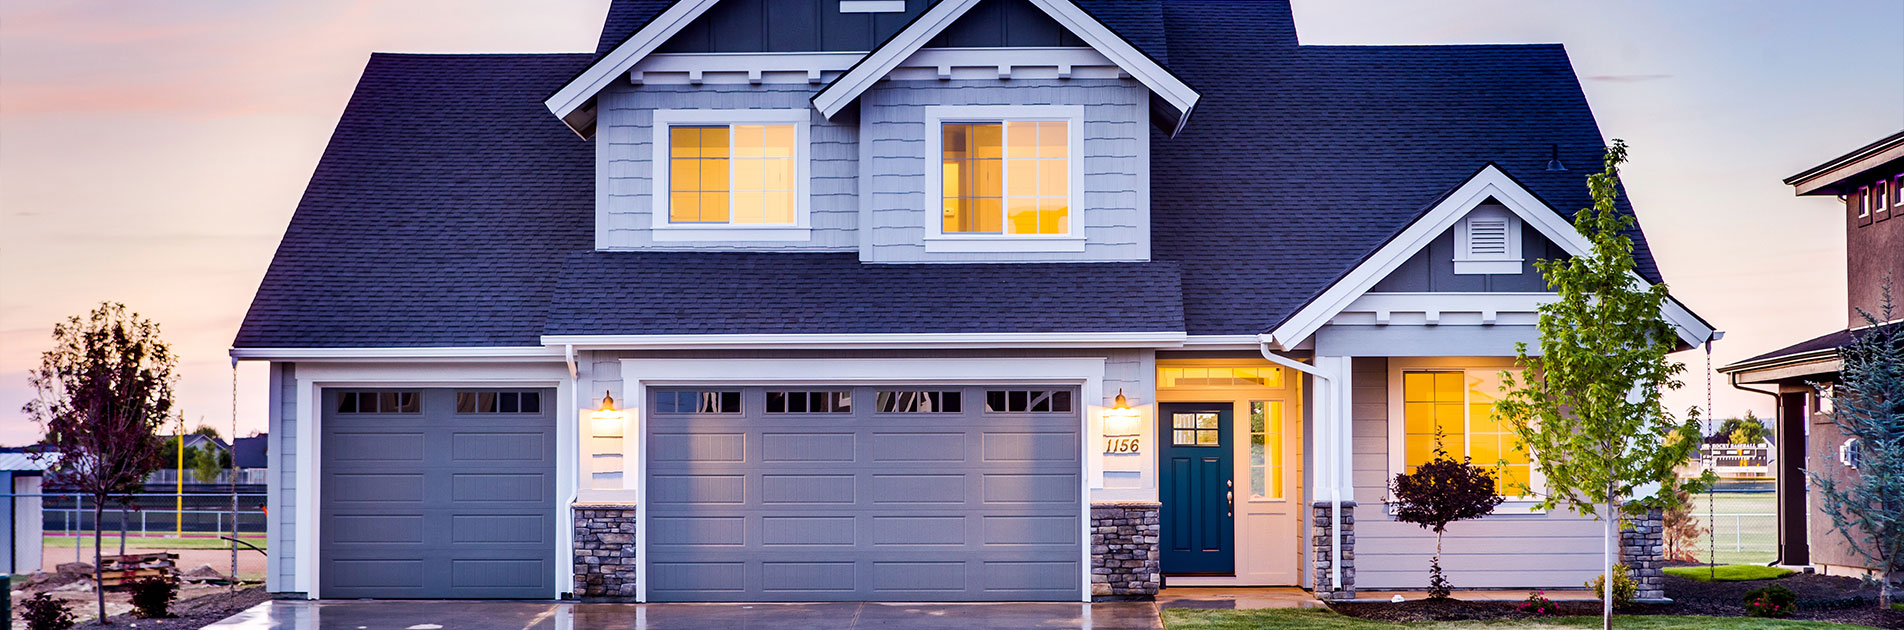 Global Garage Door Service Same Day Garage Door Service